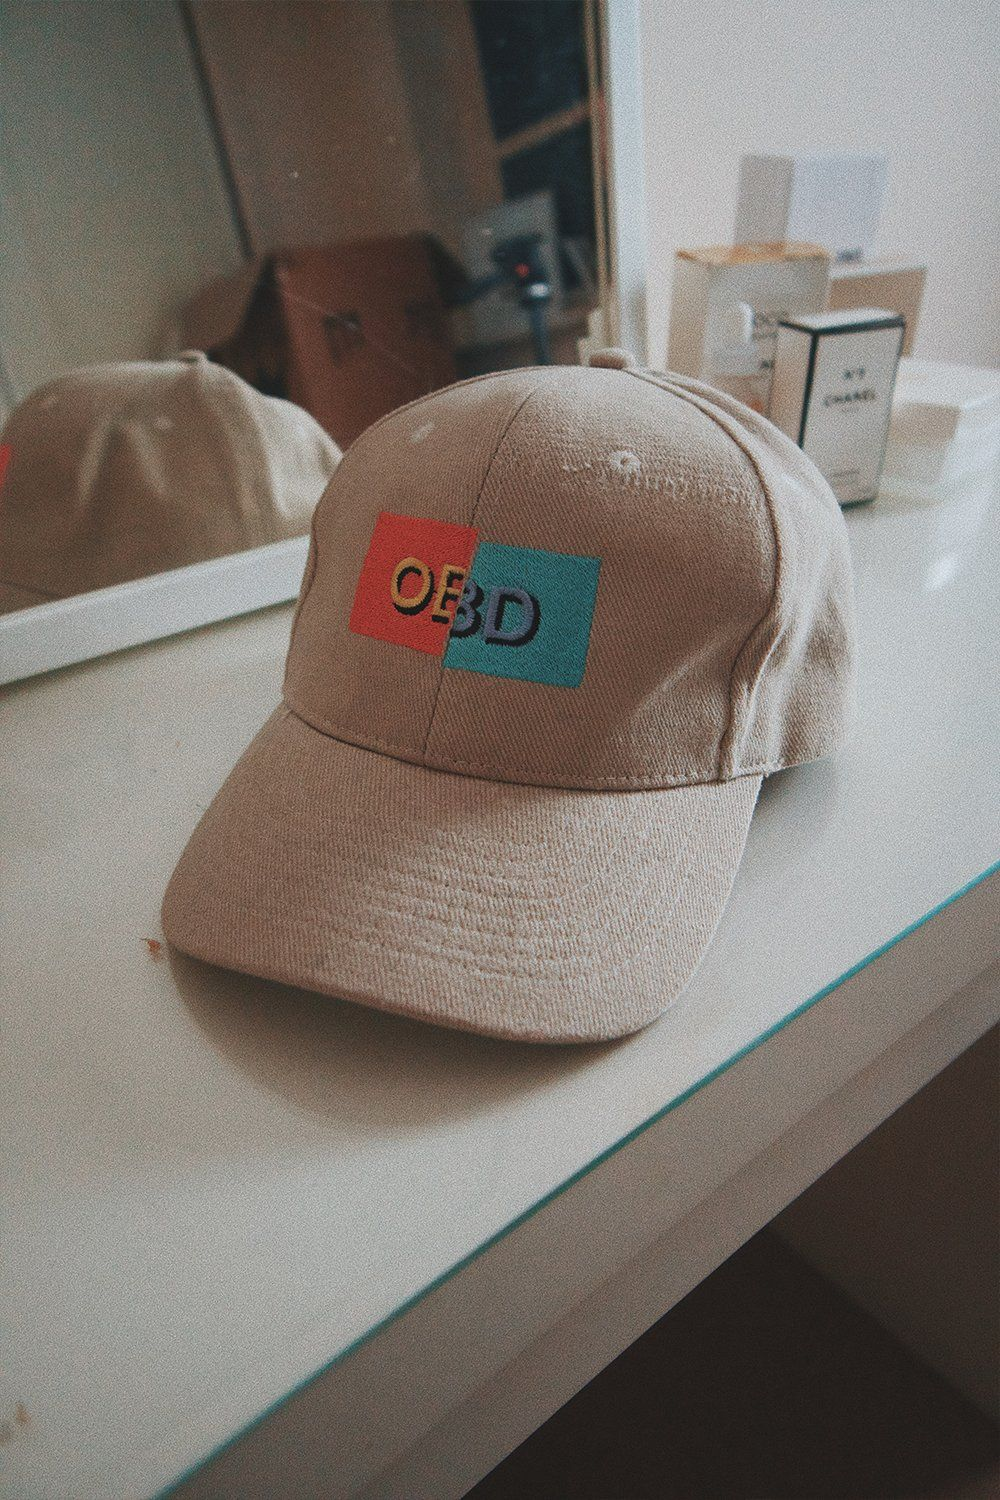 b9e9335bd Image of OBD EMBROIDERED TRUCKER CAP | TGFbro | Hats, Store, Cap